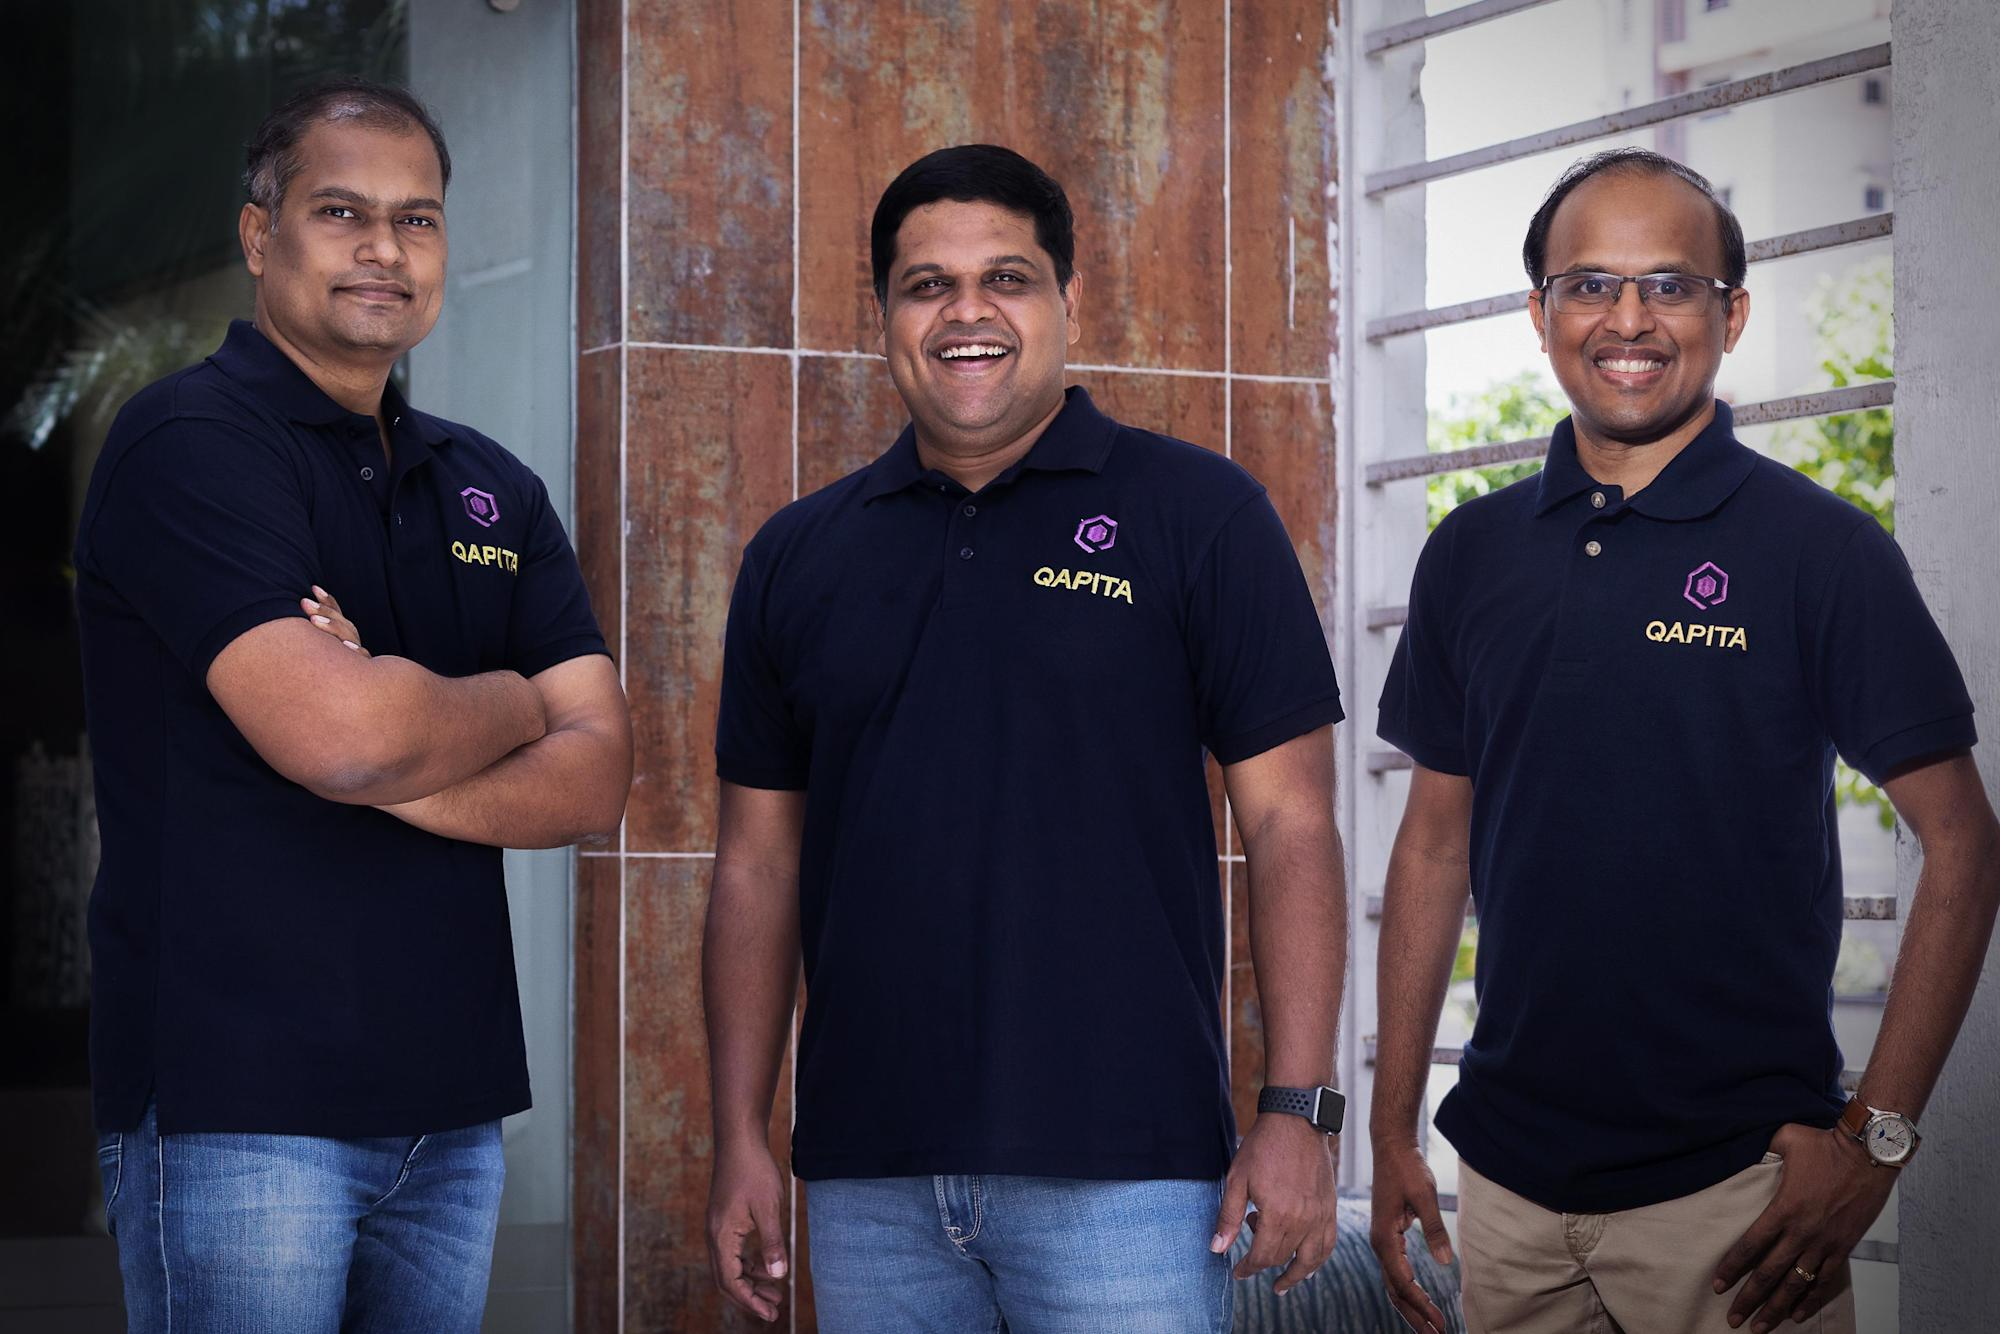 Qapita, a developer of equity management software for startups, raises $5M led by MassMutual Ventures